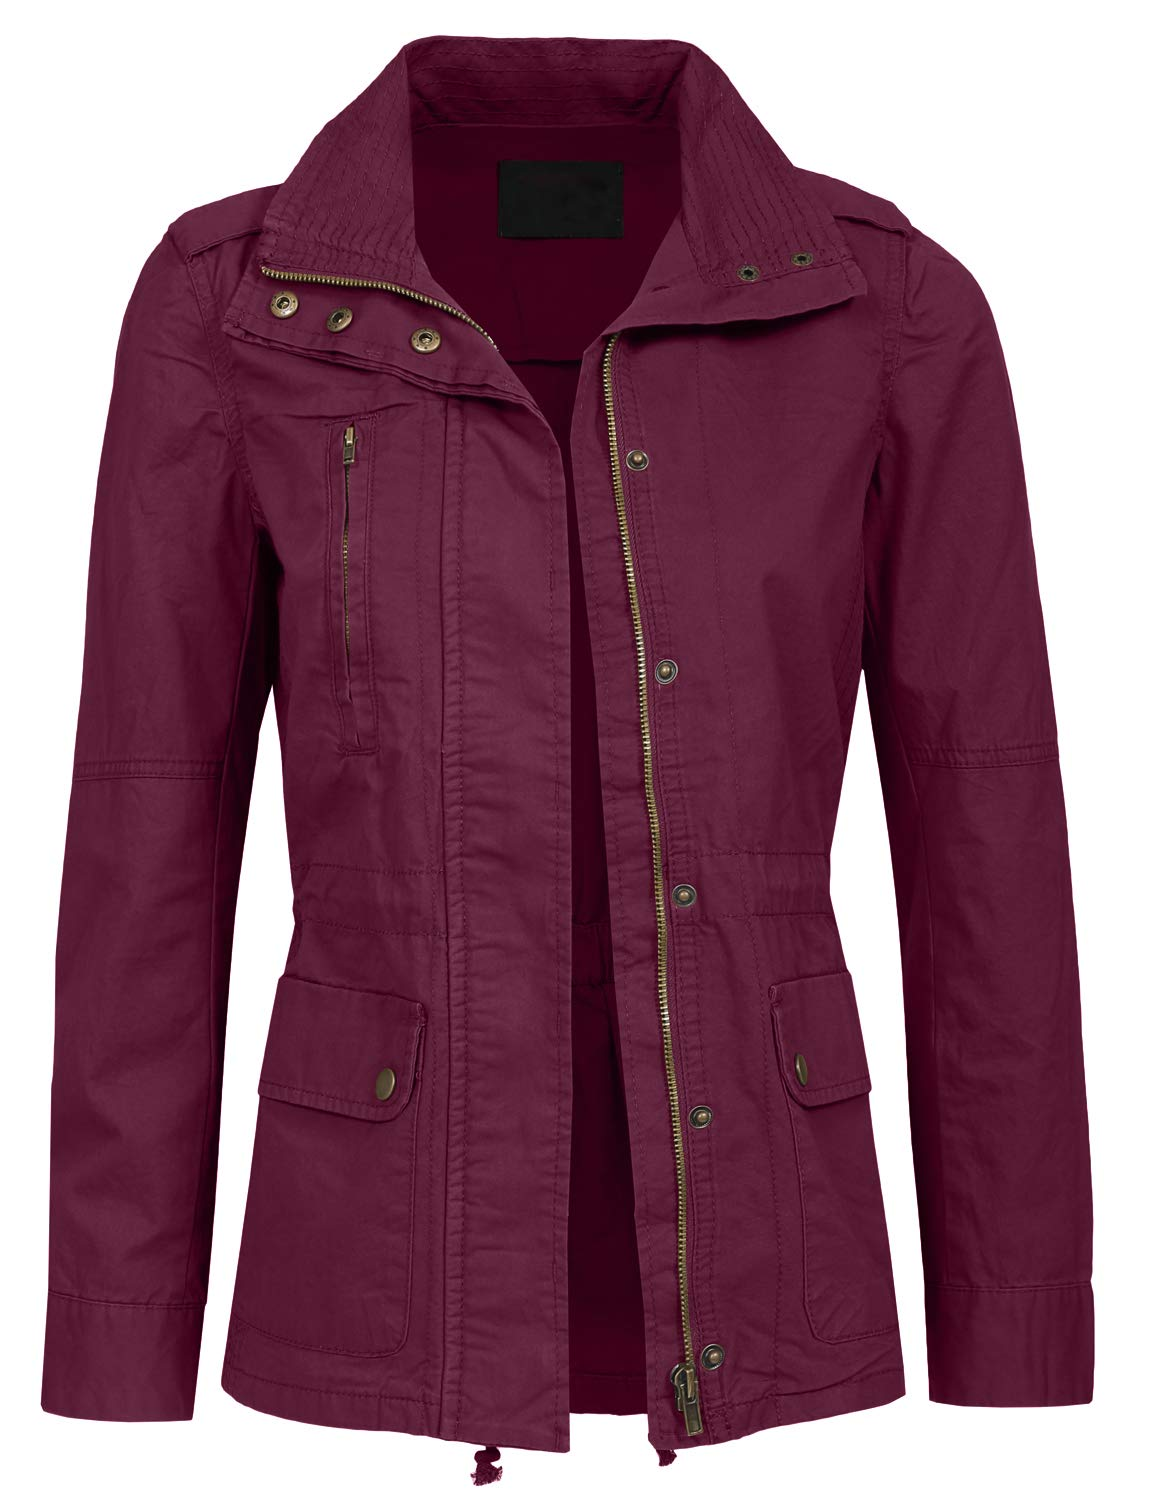 J. LOVNY Women's Versatile Military Anorak Jacket in Various Styles S-3XL by J. LOVNY